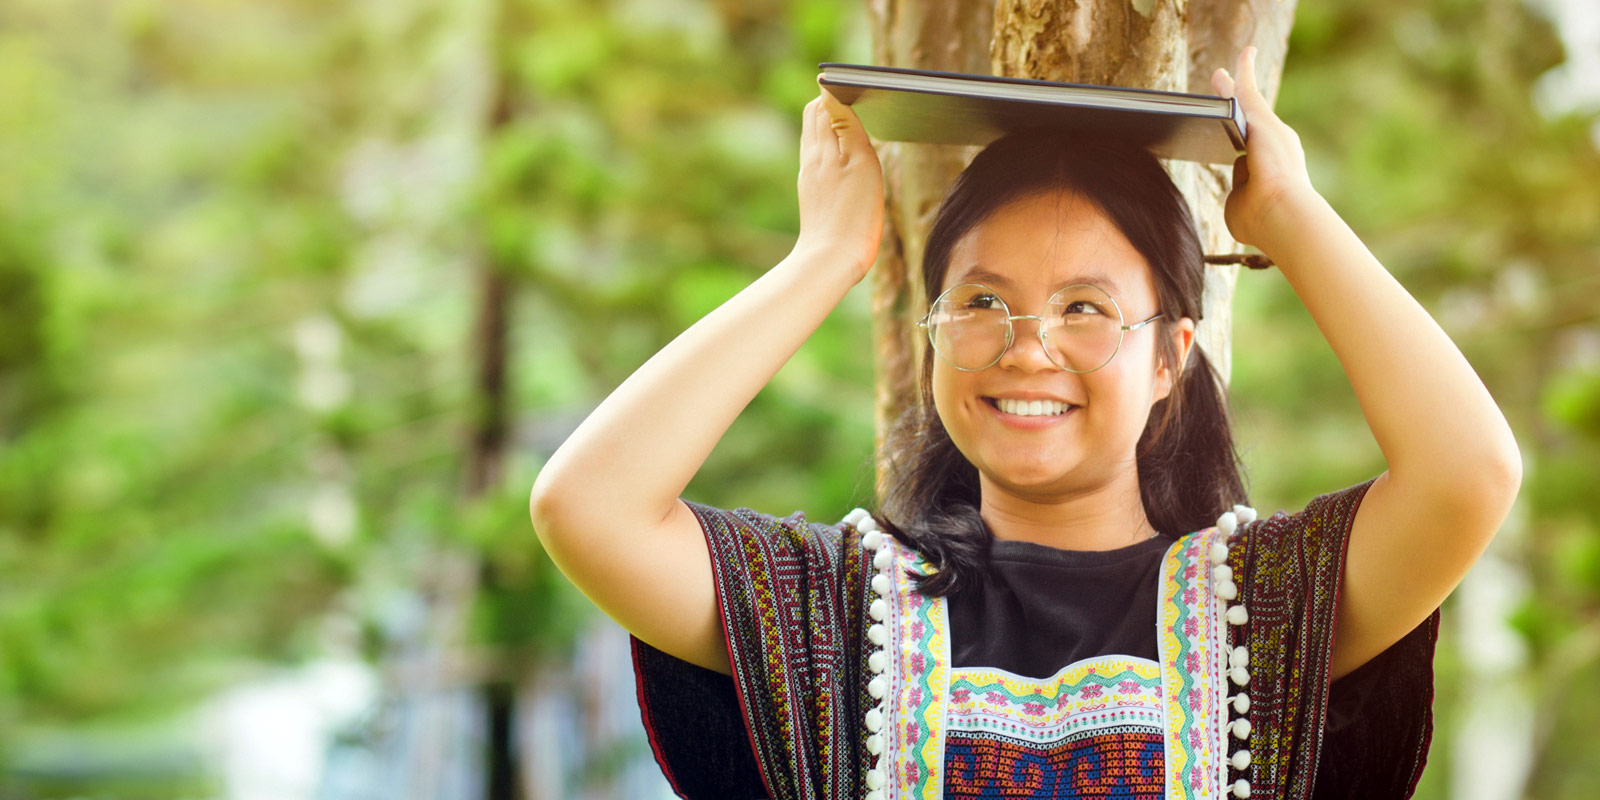 female youth holding book over head by a tree